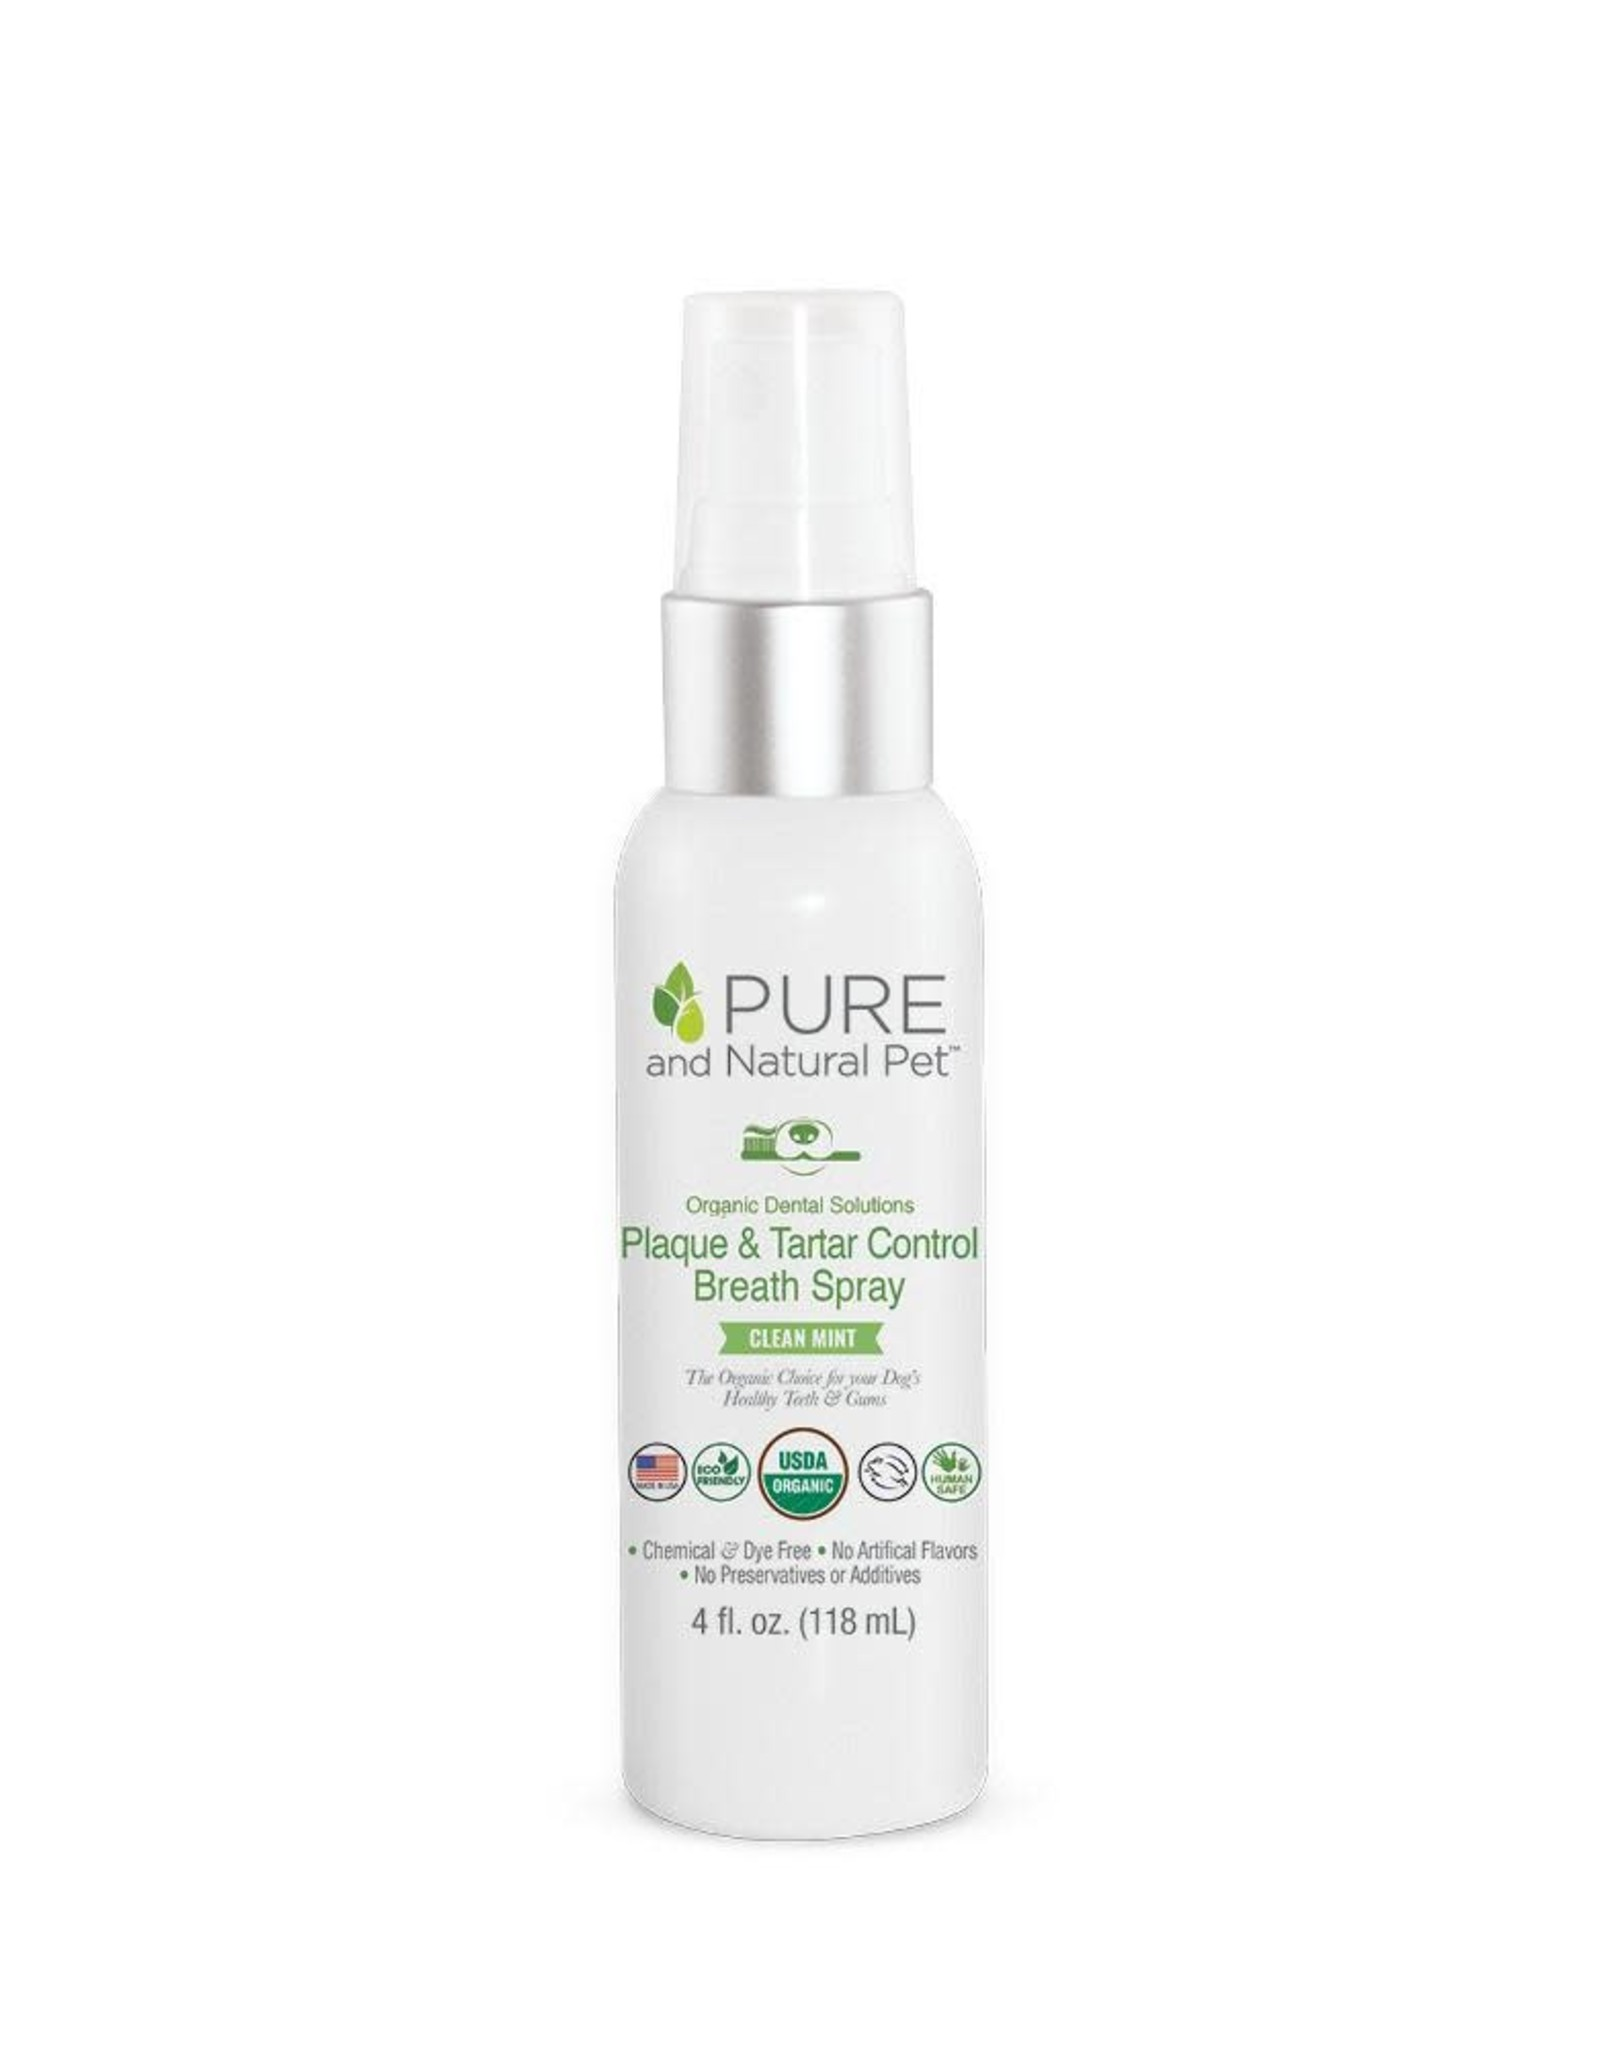 Pure and Natural Pet Plaque & Tarter Control Breath Spray